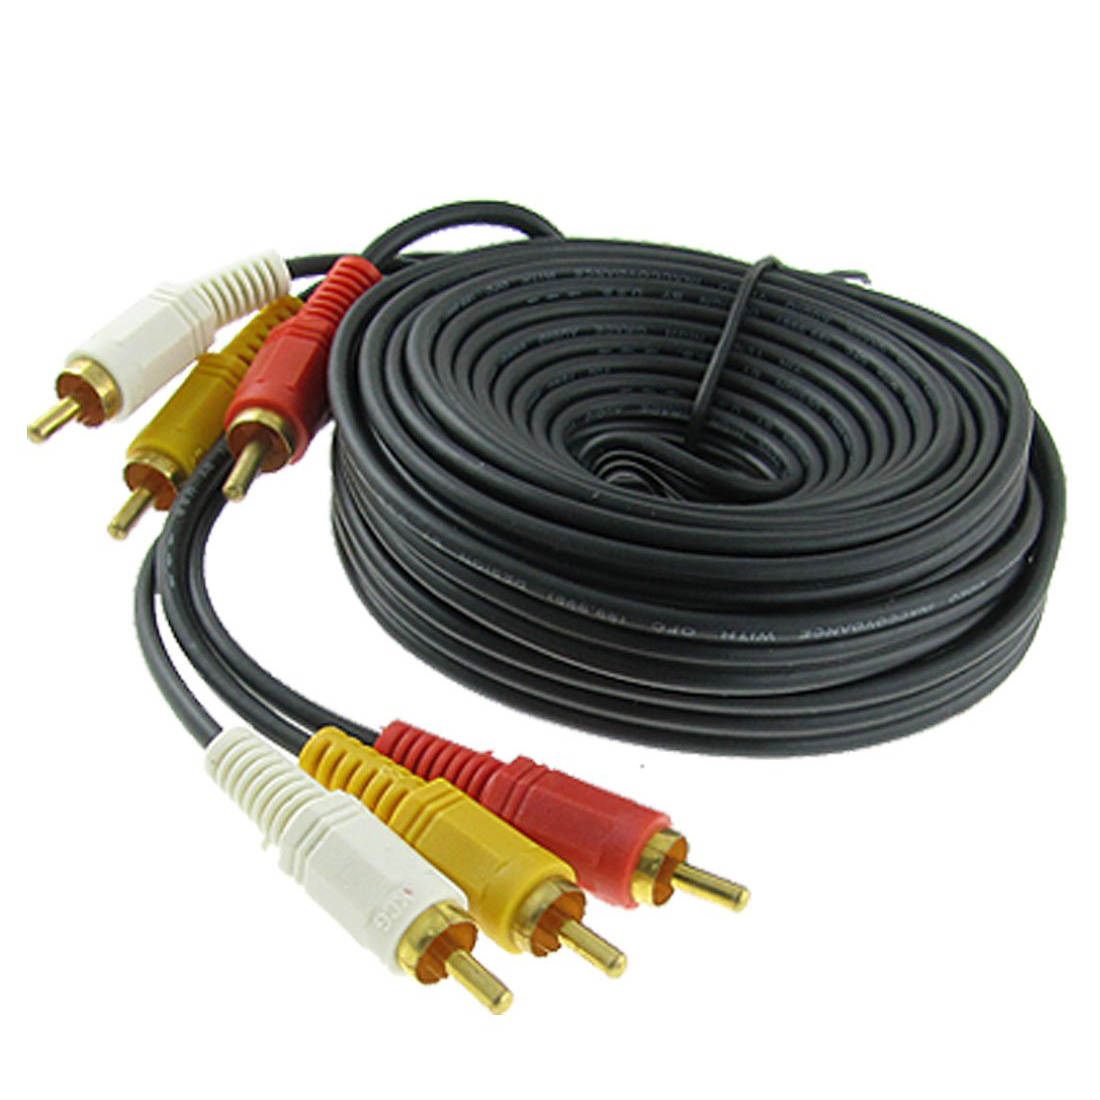 Triple 3 RCA Male to Male Audio Video DVD TV AV Cable 4.6M Long ...